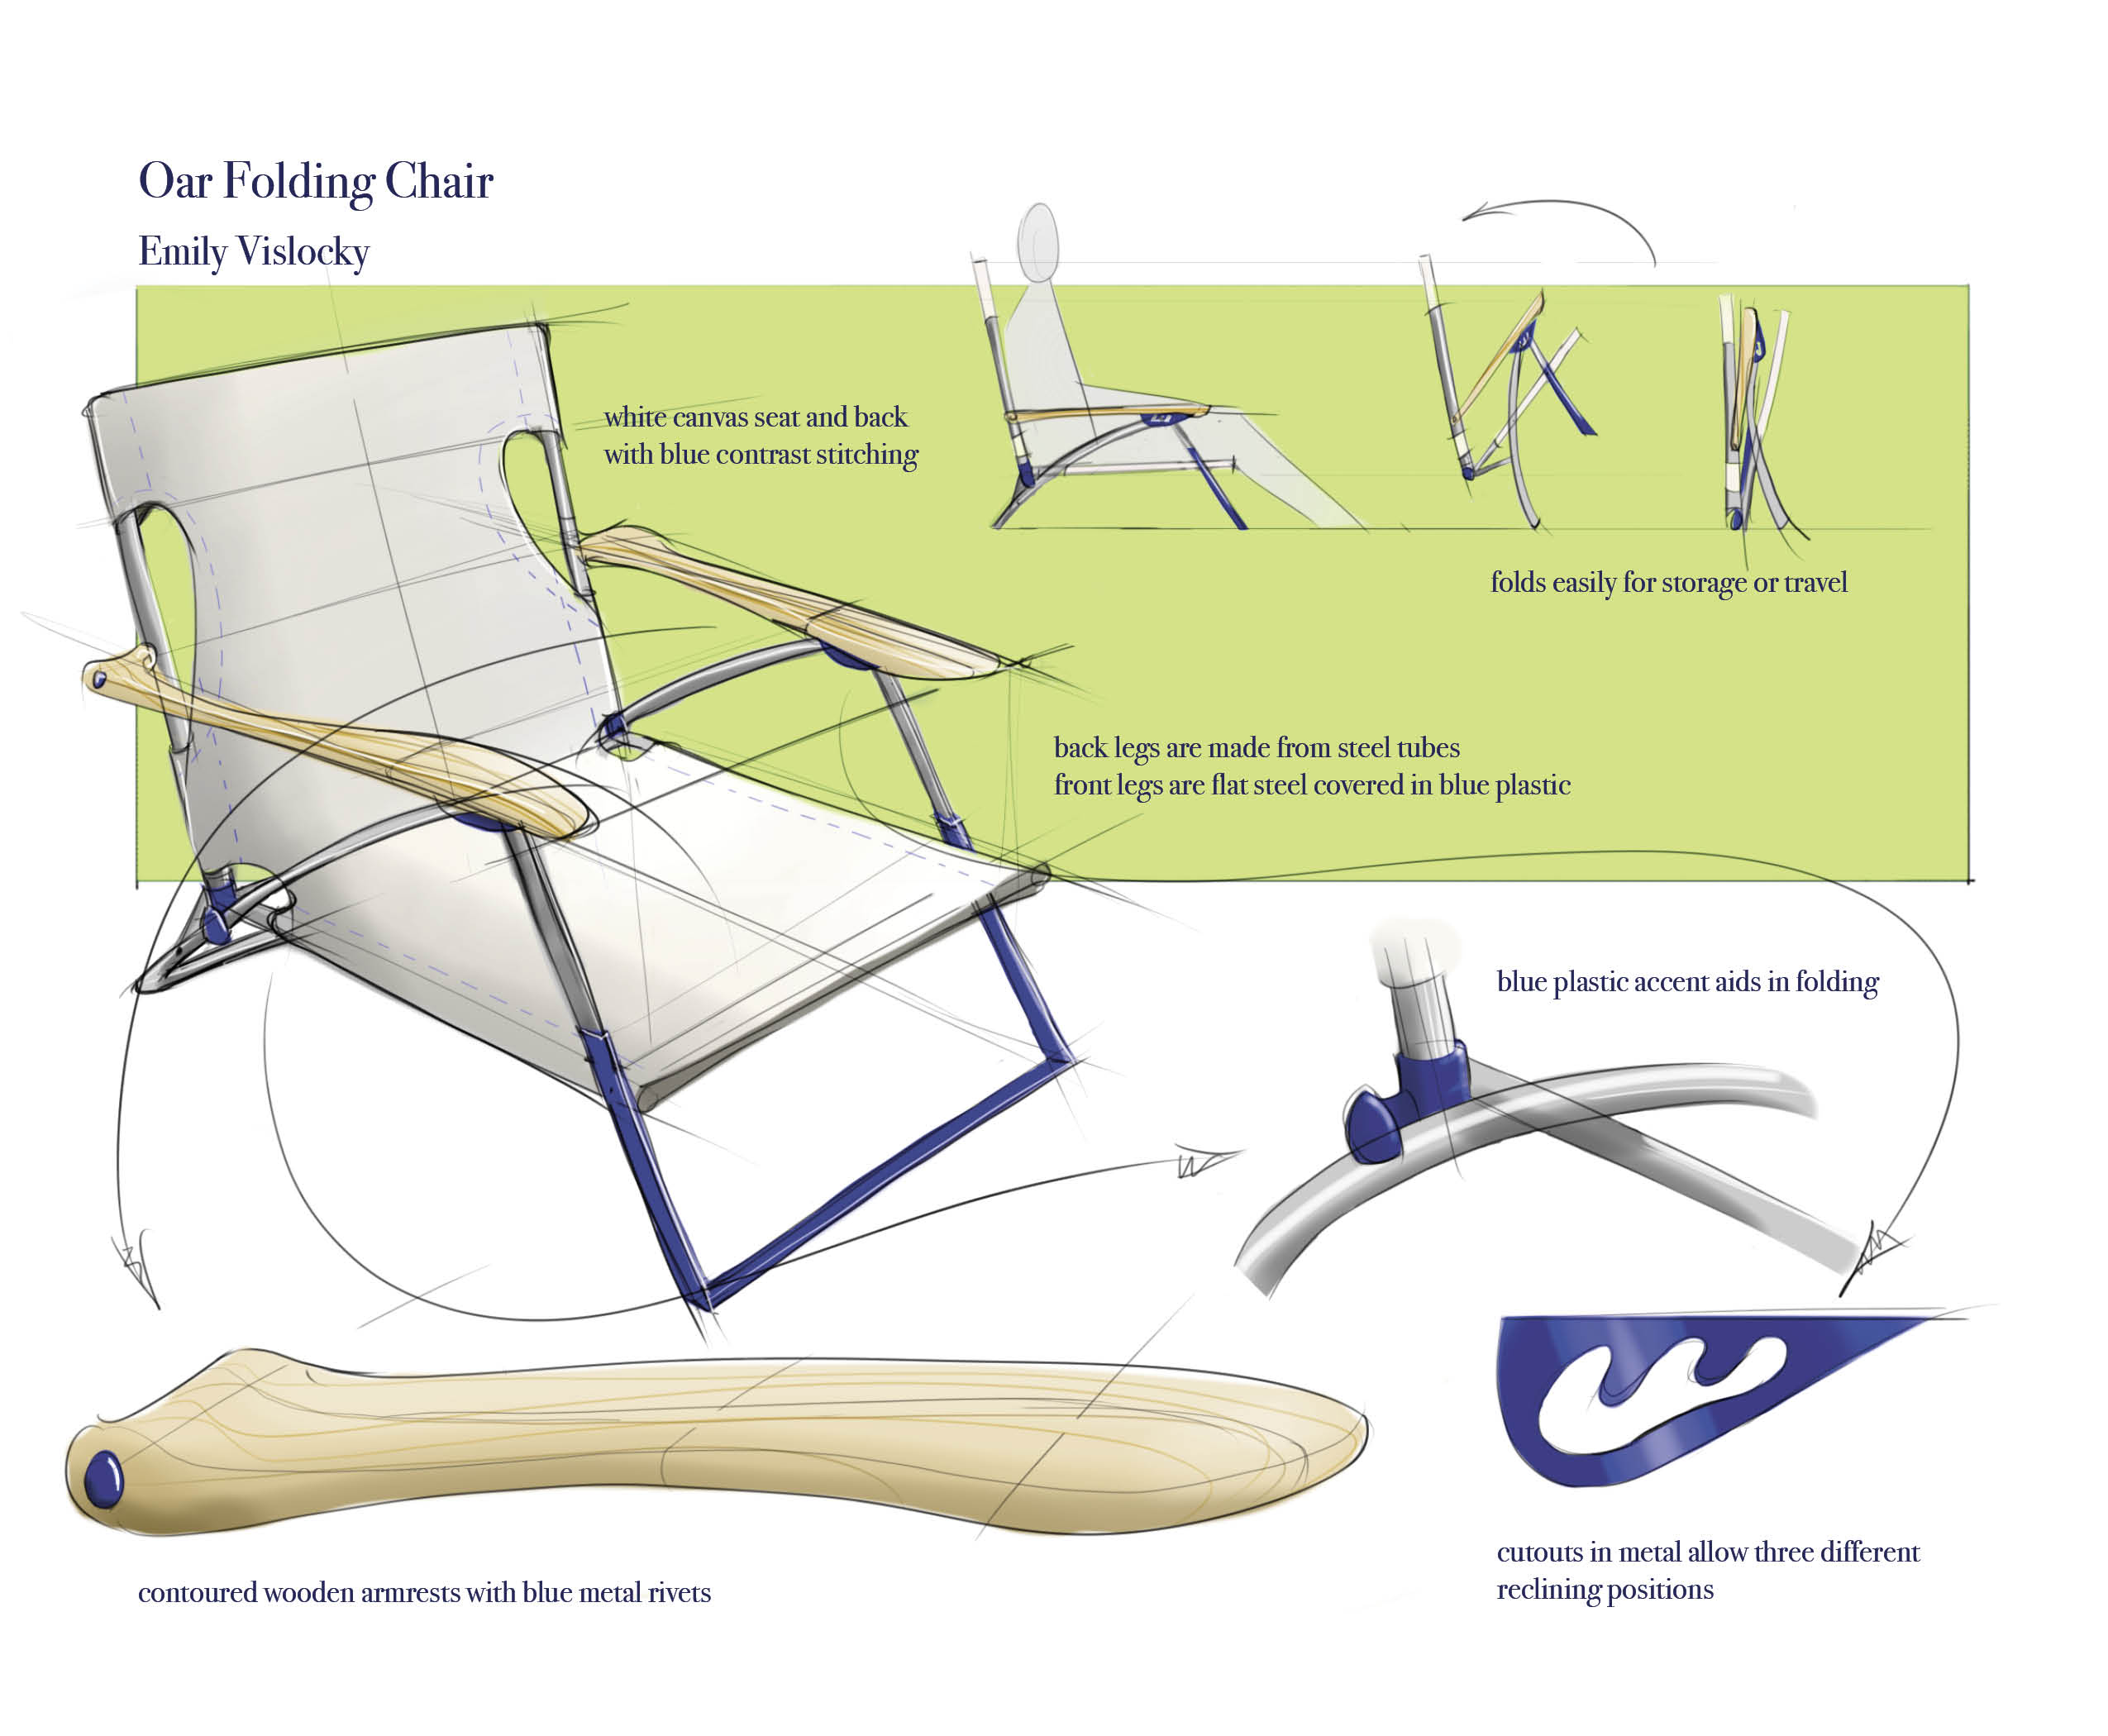 Folding Chairs by Emily Vislocky at Coroflot